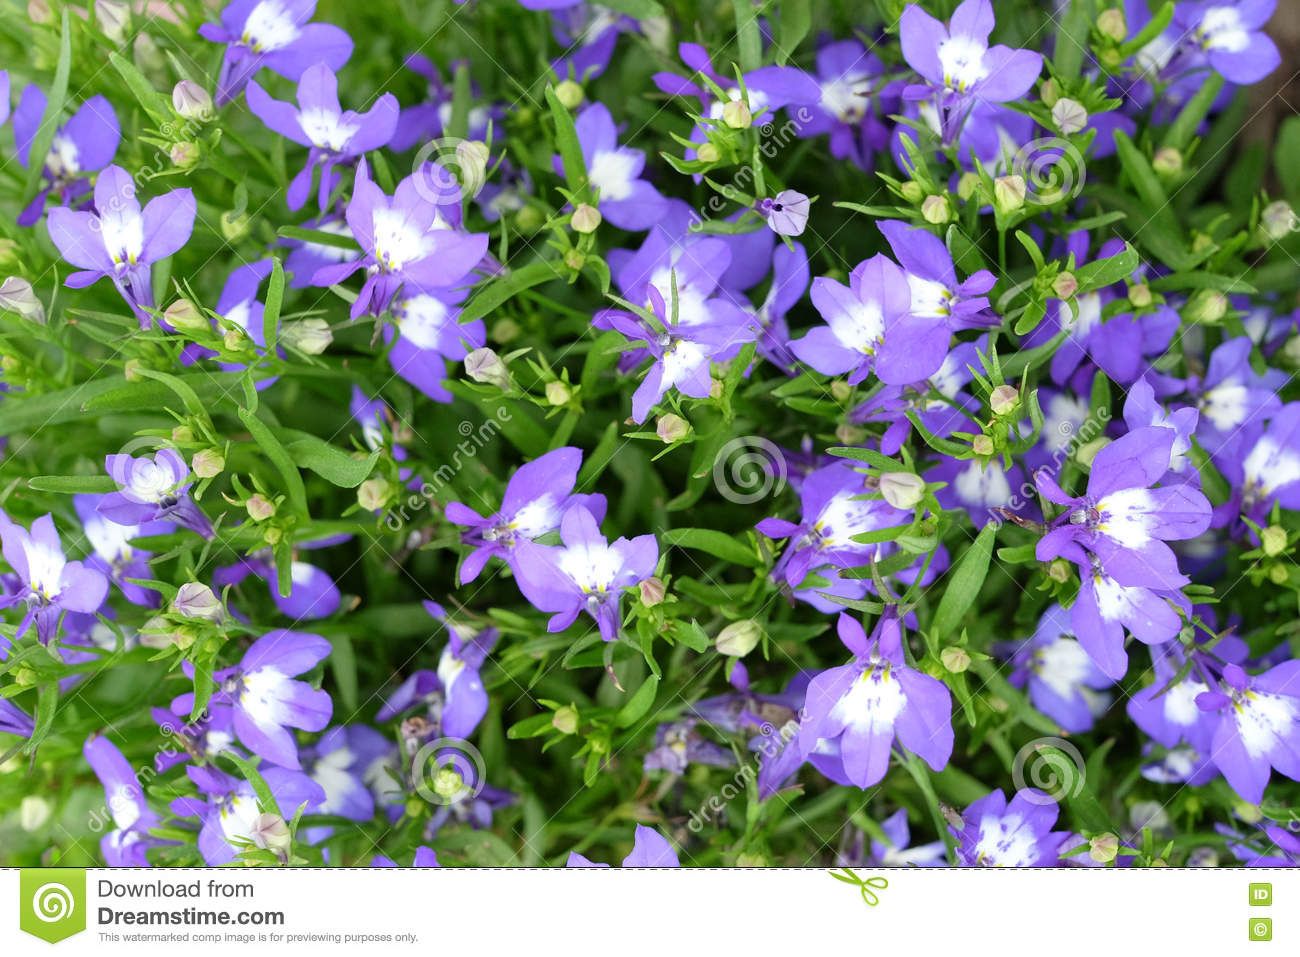 Small Purple White Flowers In Green Grass Stock Image Image Of